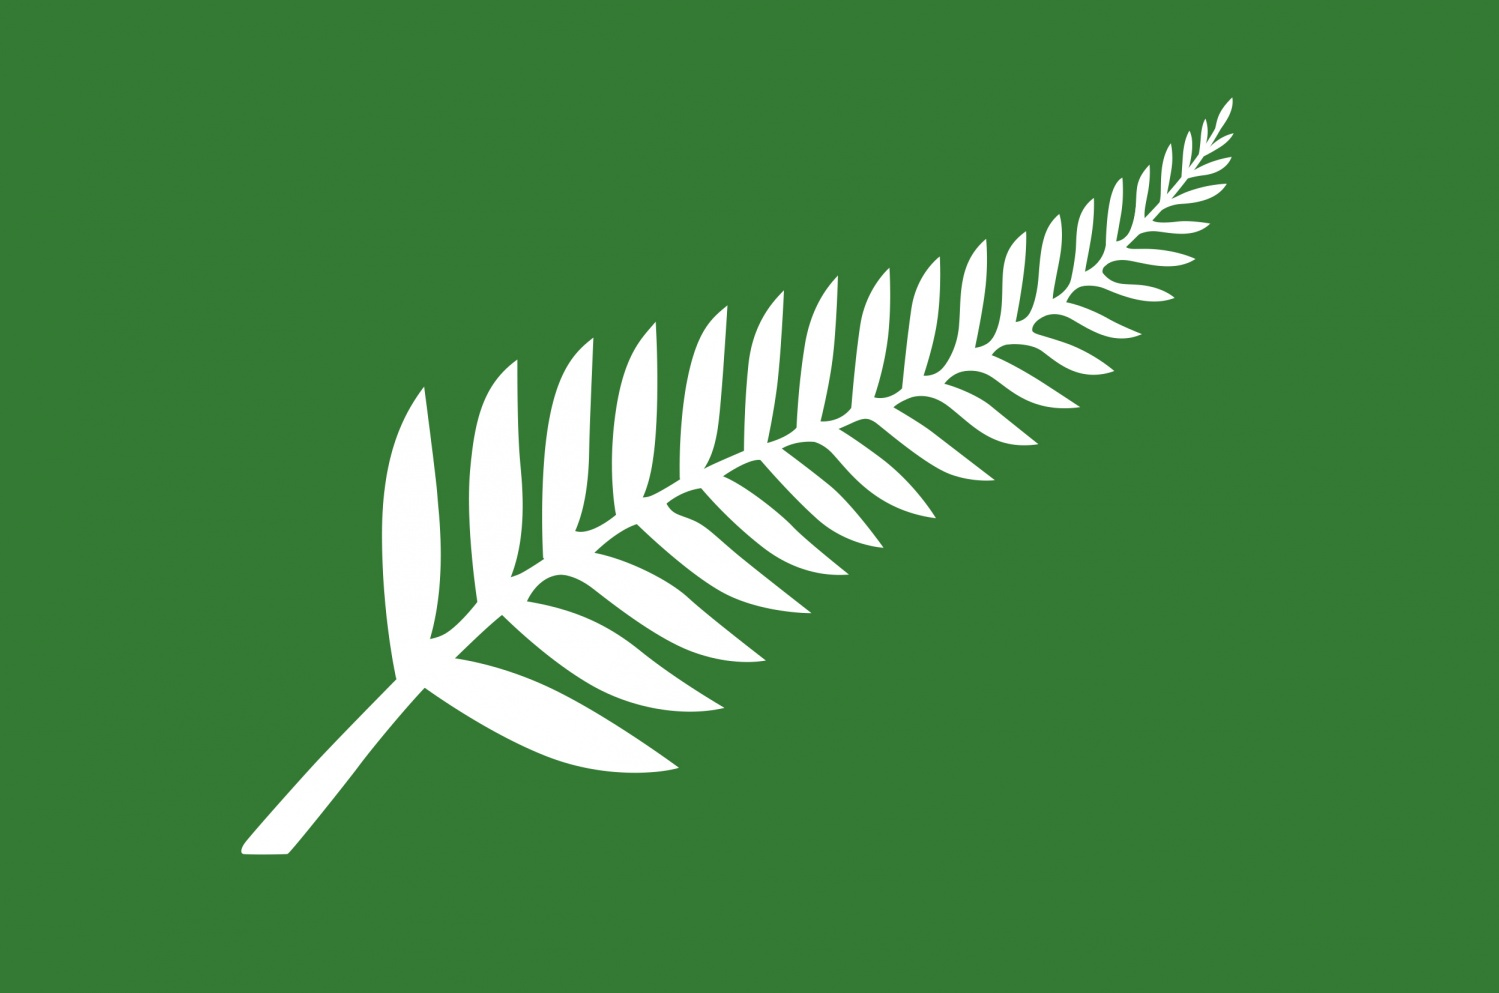 File:NZ flag design Silver Fern (Green) by Roger Clarke.jpg ...